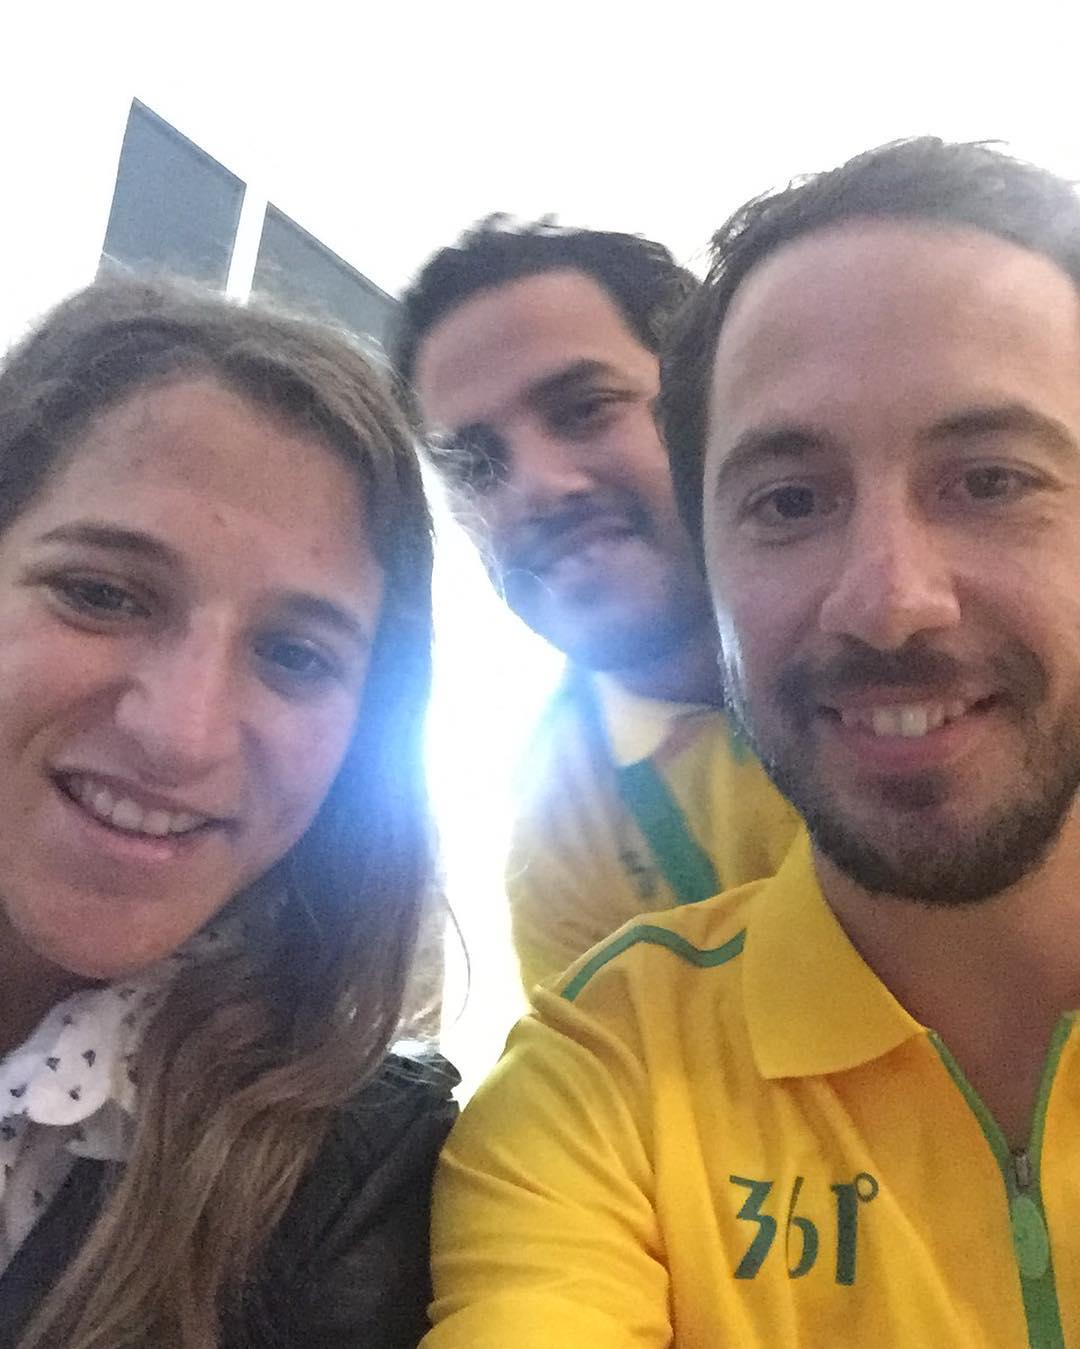 #SelfieOlimpica #Rio2016